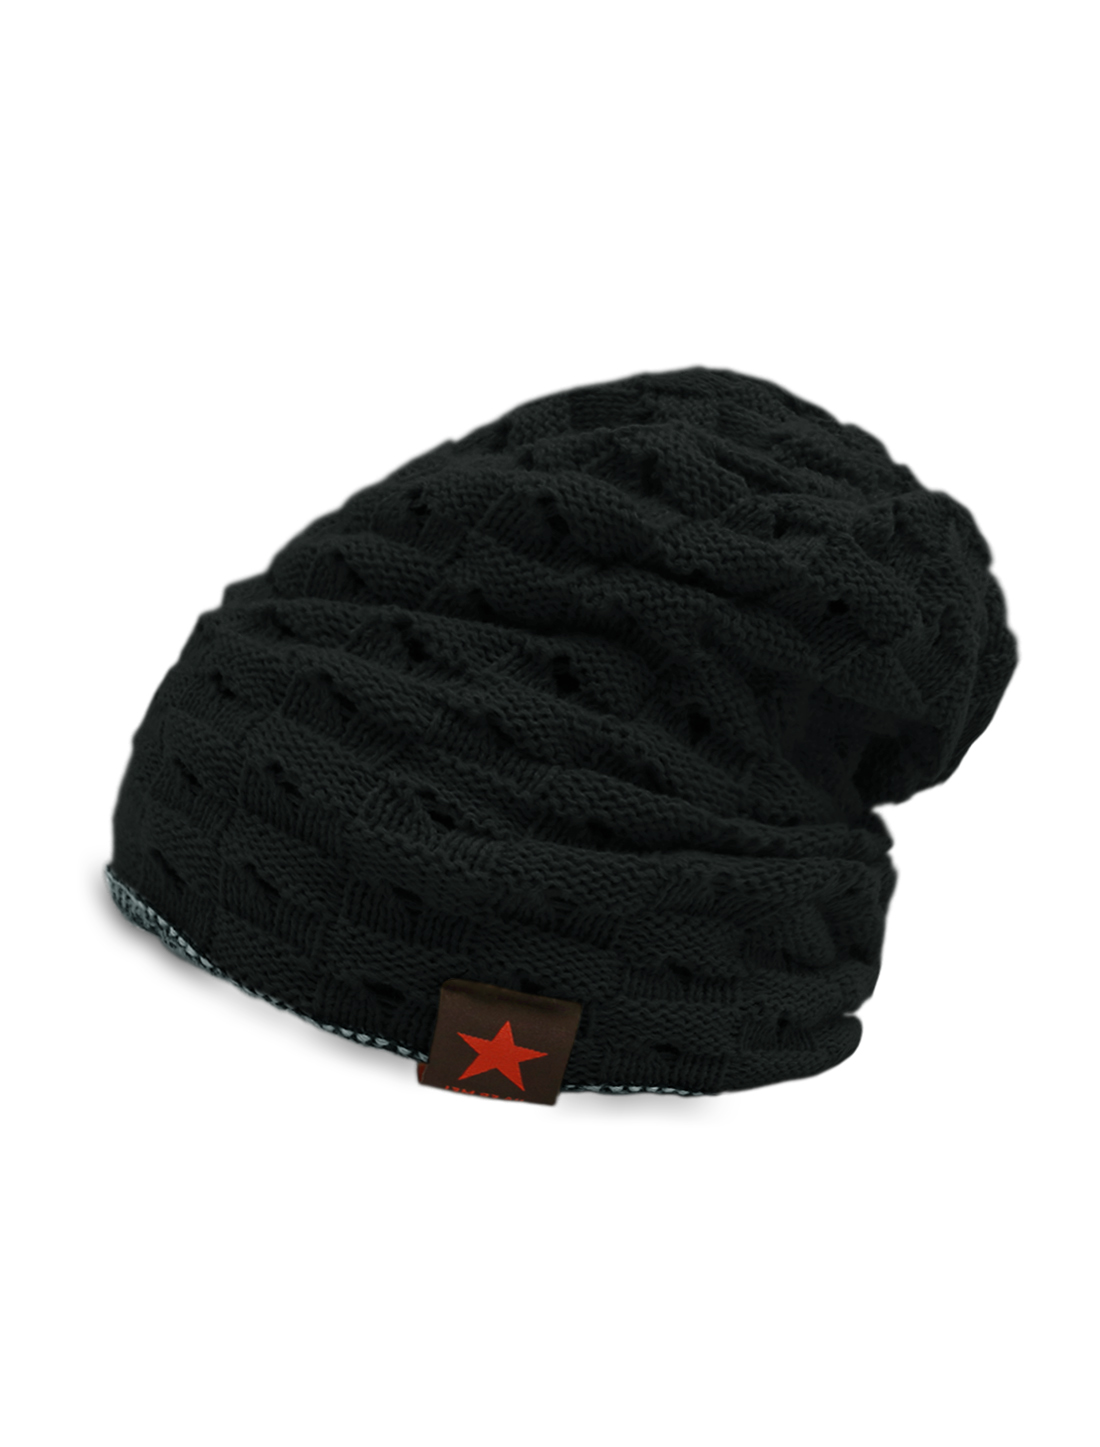 Unisex Hollow Out Design Reversible Knitted Beanie Hat Black